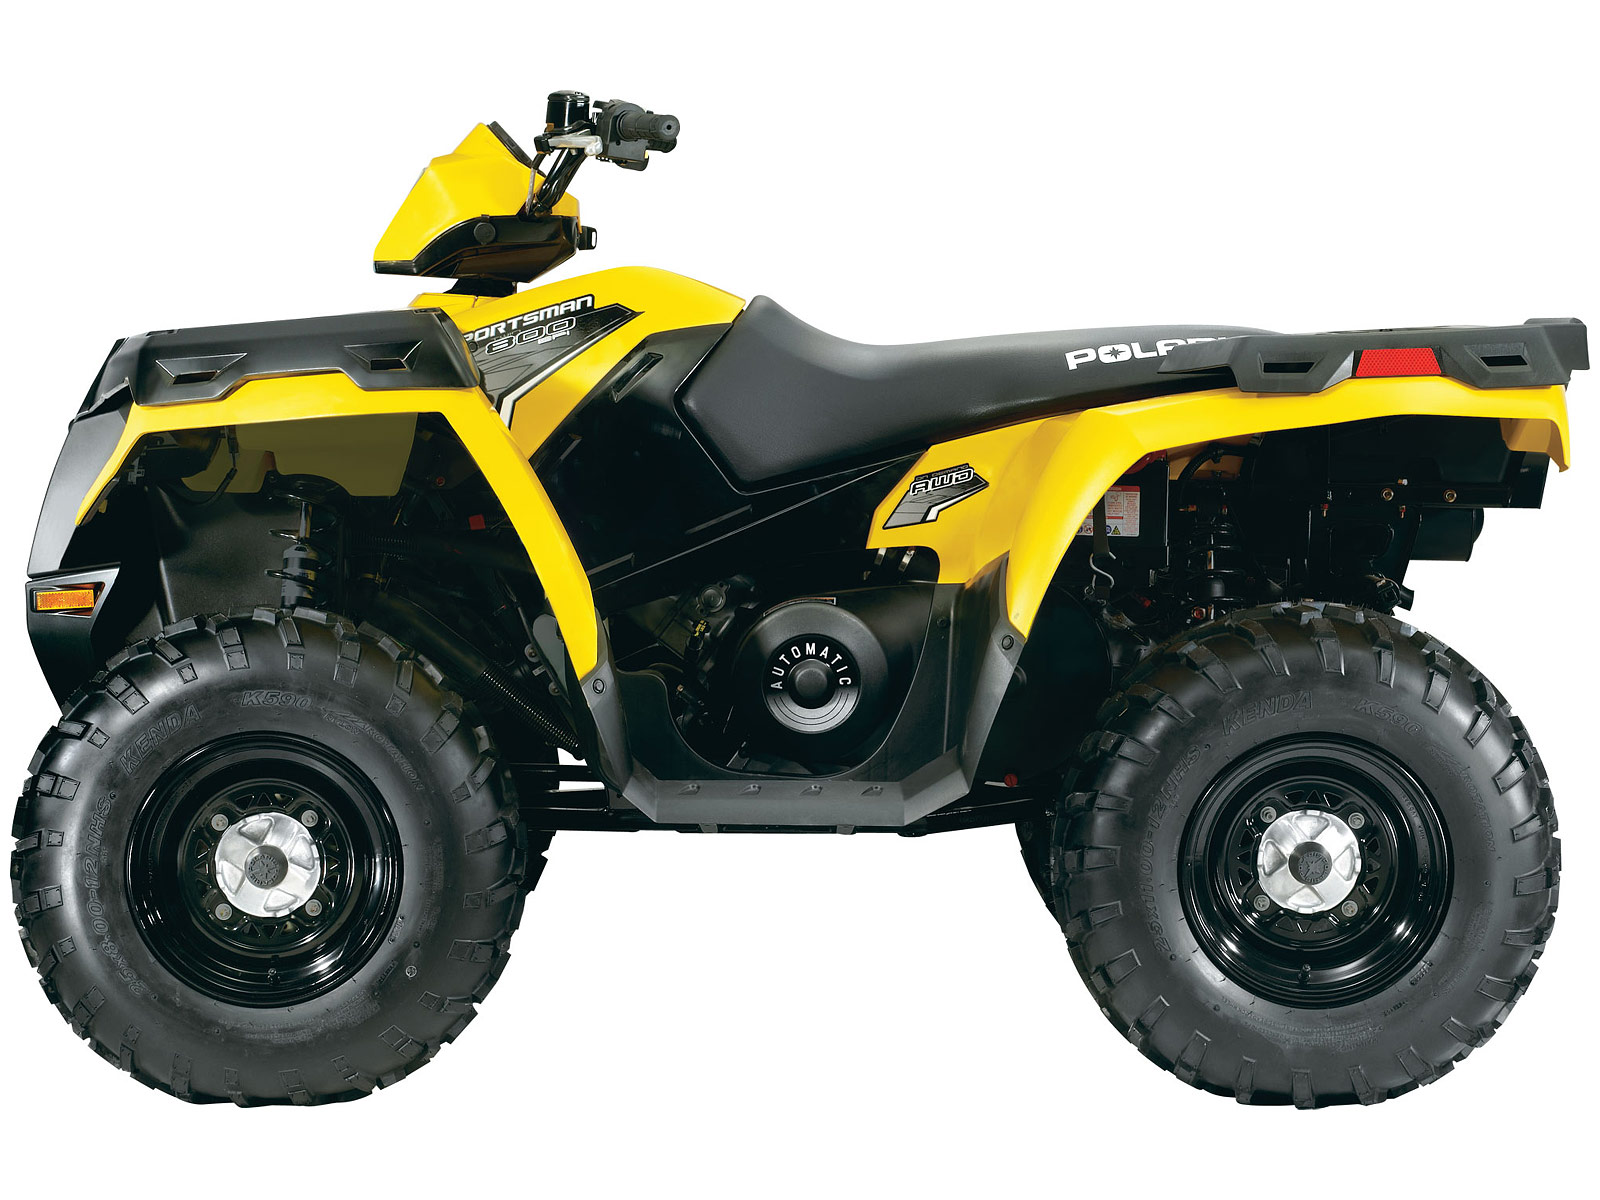 2012 polaris sportsman 800efi atv insurance information. Black Bedroom Furniture Sets. Home Design Ideas